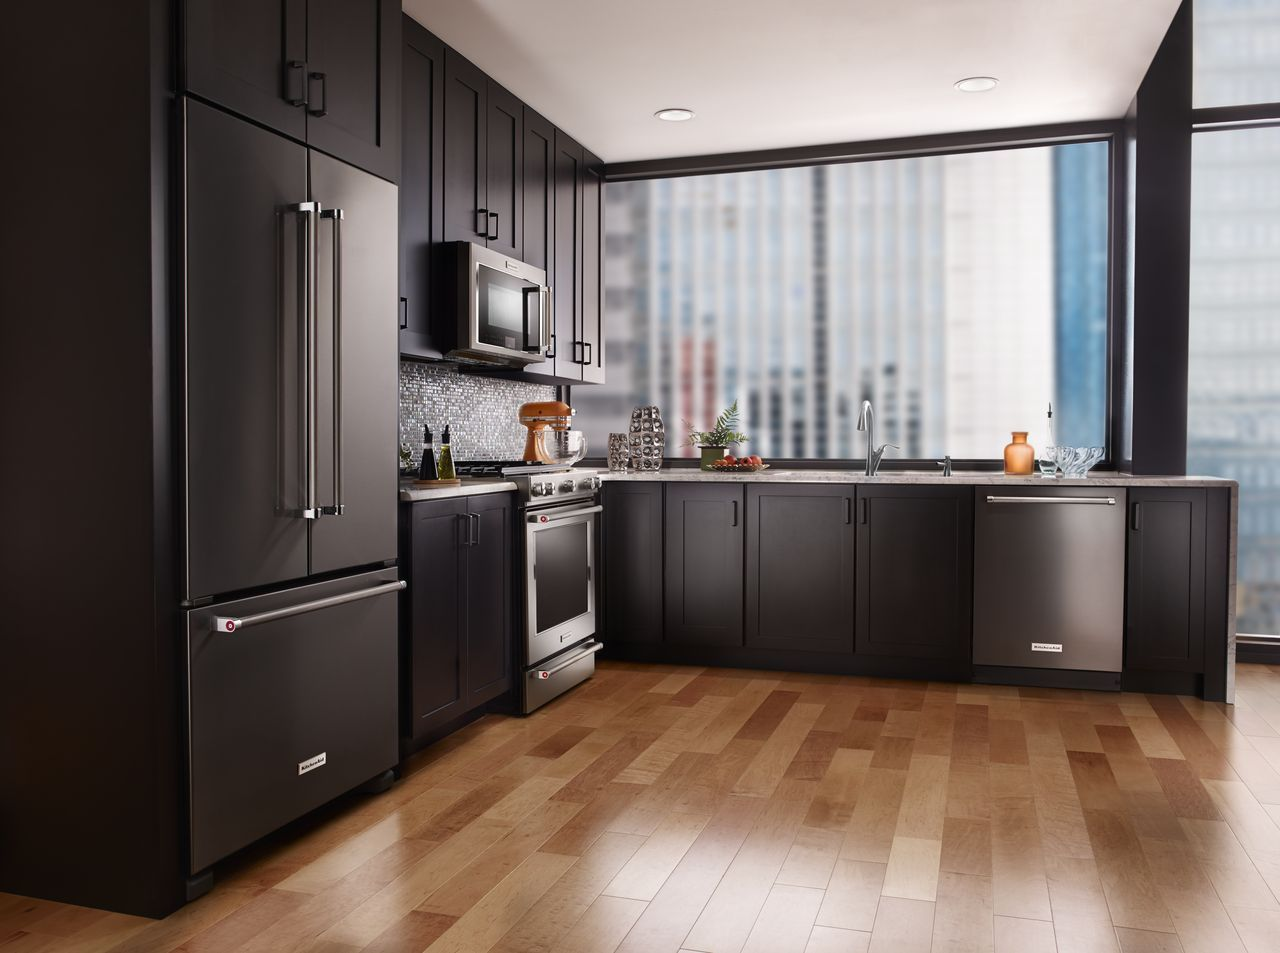 White Kitchen Cabinets With Black Stainless Steel Appliances